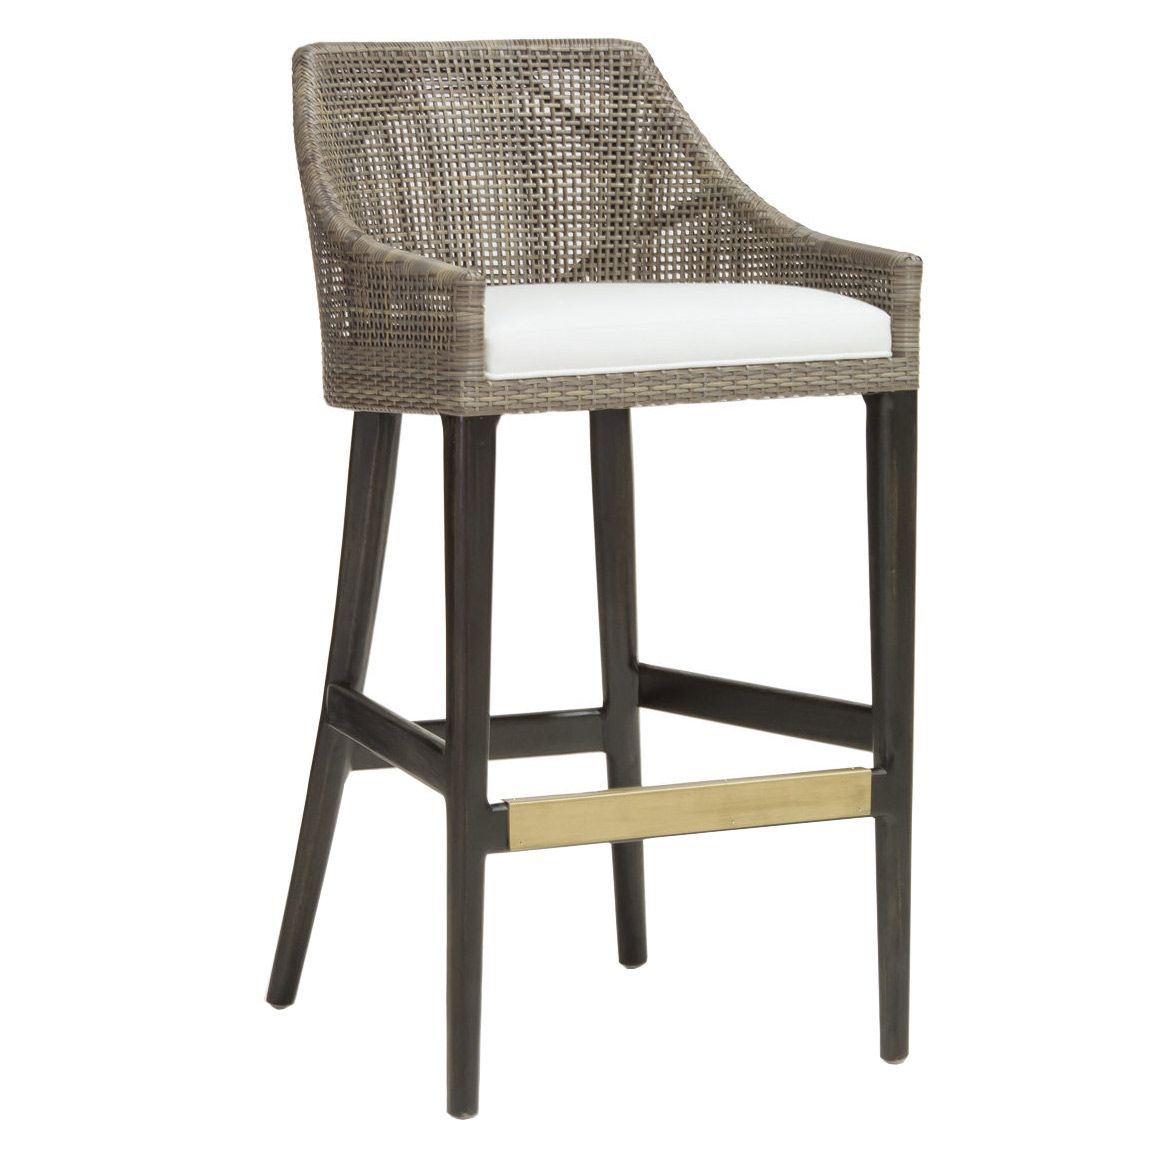 The Palecek Vincent Counter Bar Stool Minimum Purchase Of